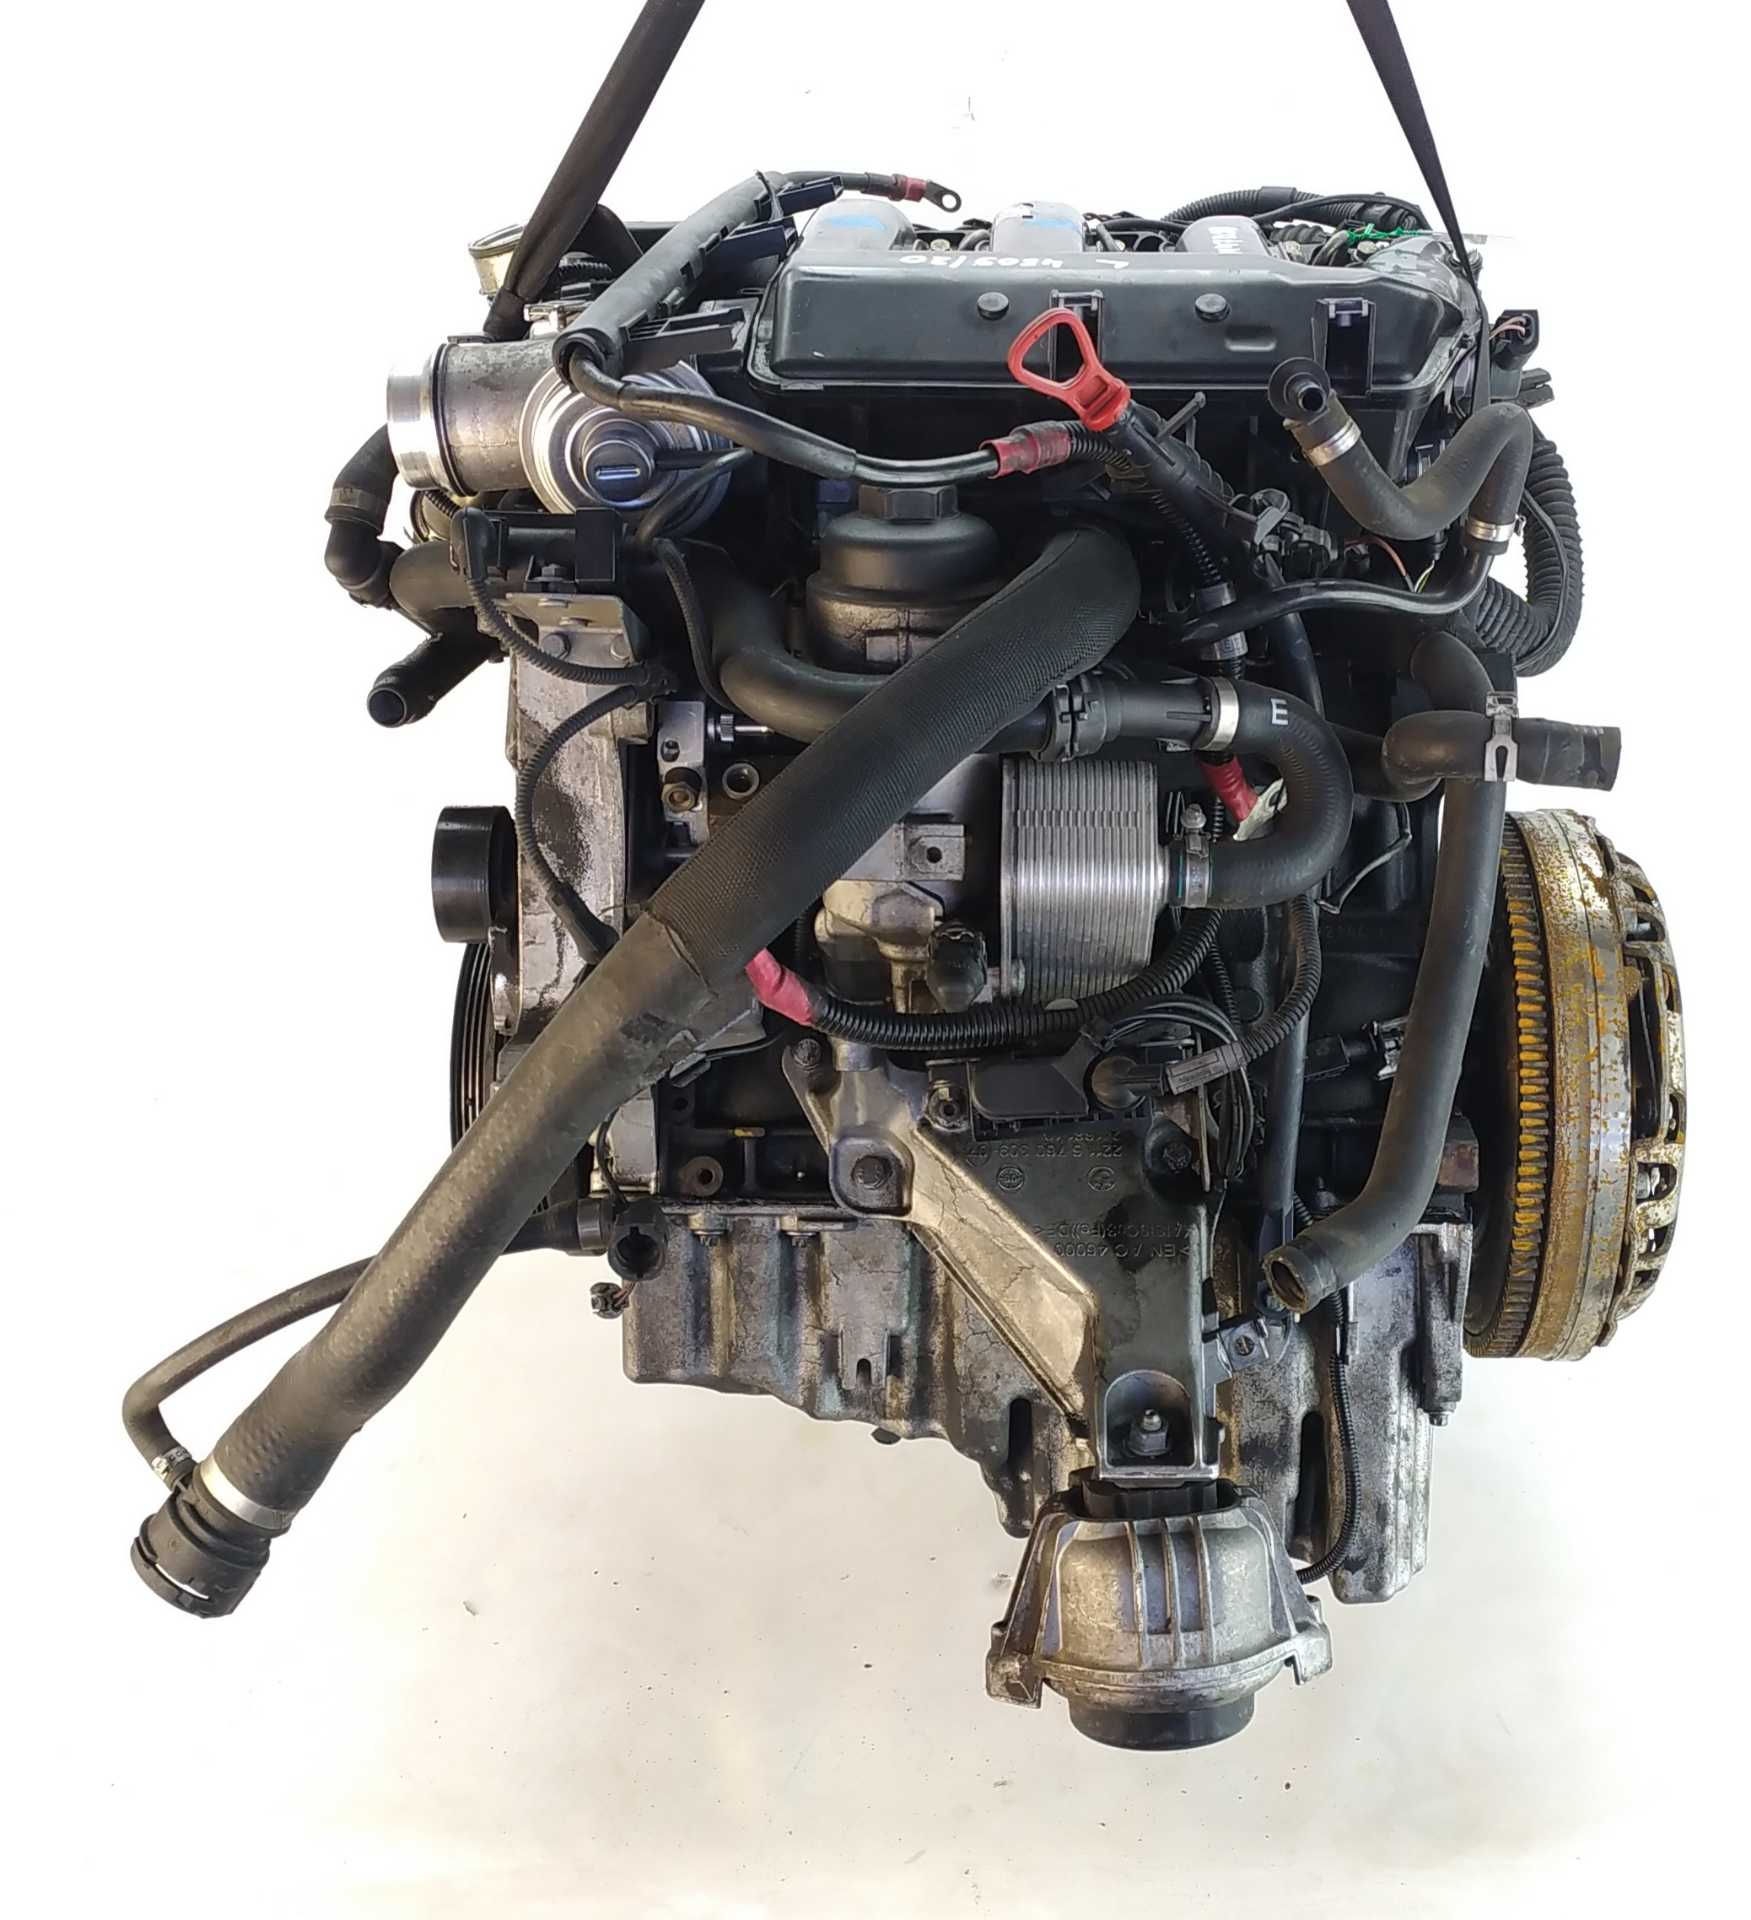 MOTOR COMPLETO BMW 3 Touring 320 d (120 KW / 163 CV) (12.2004 - 06.2012)